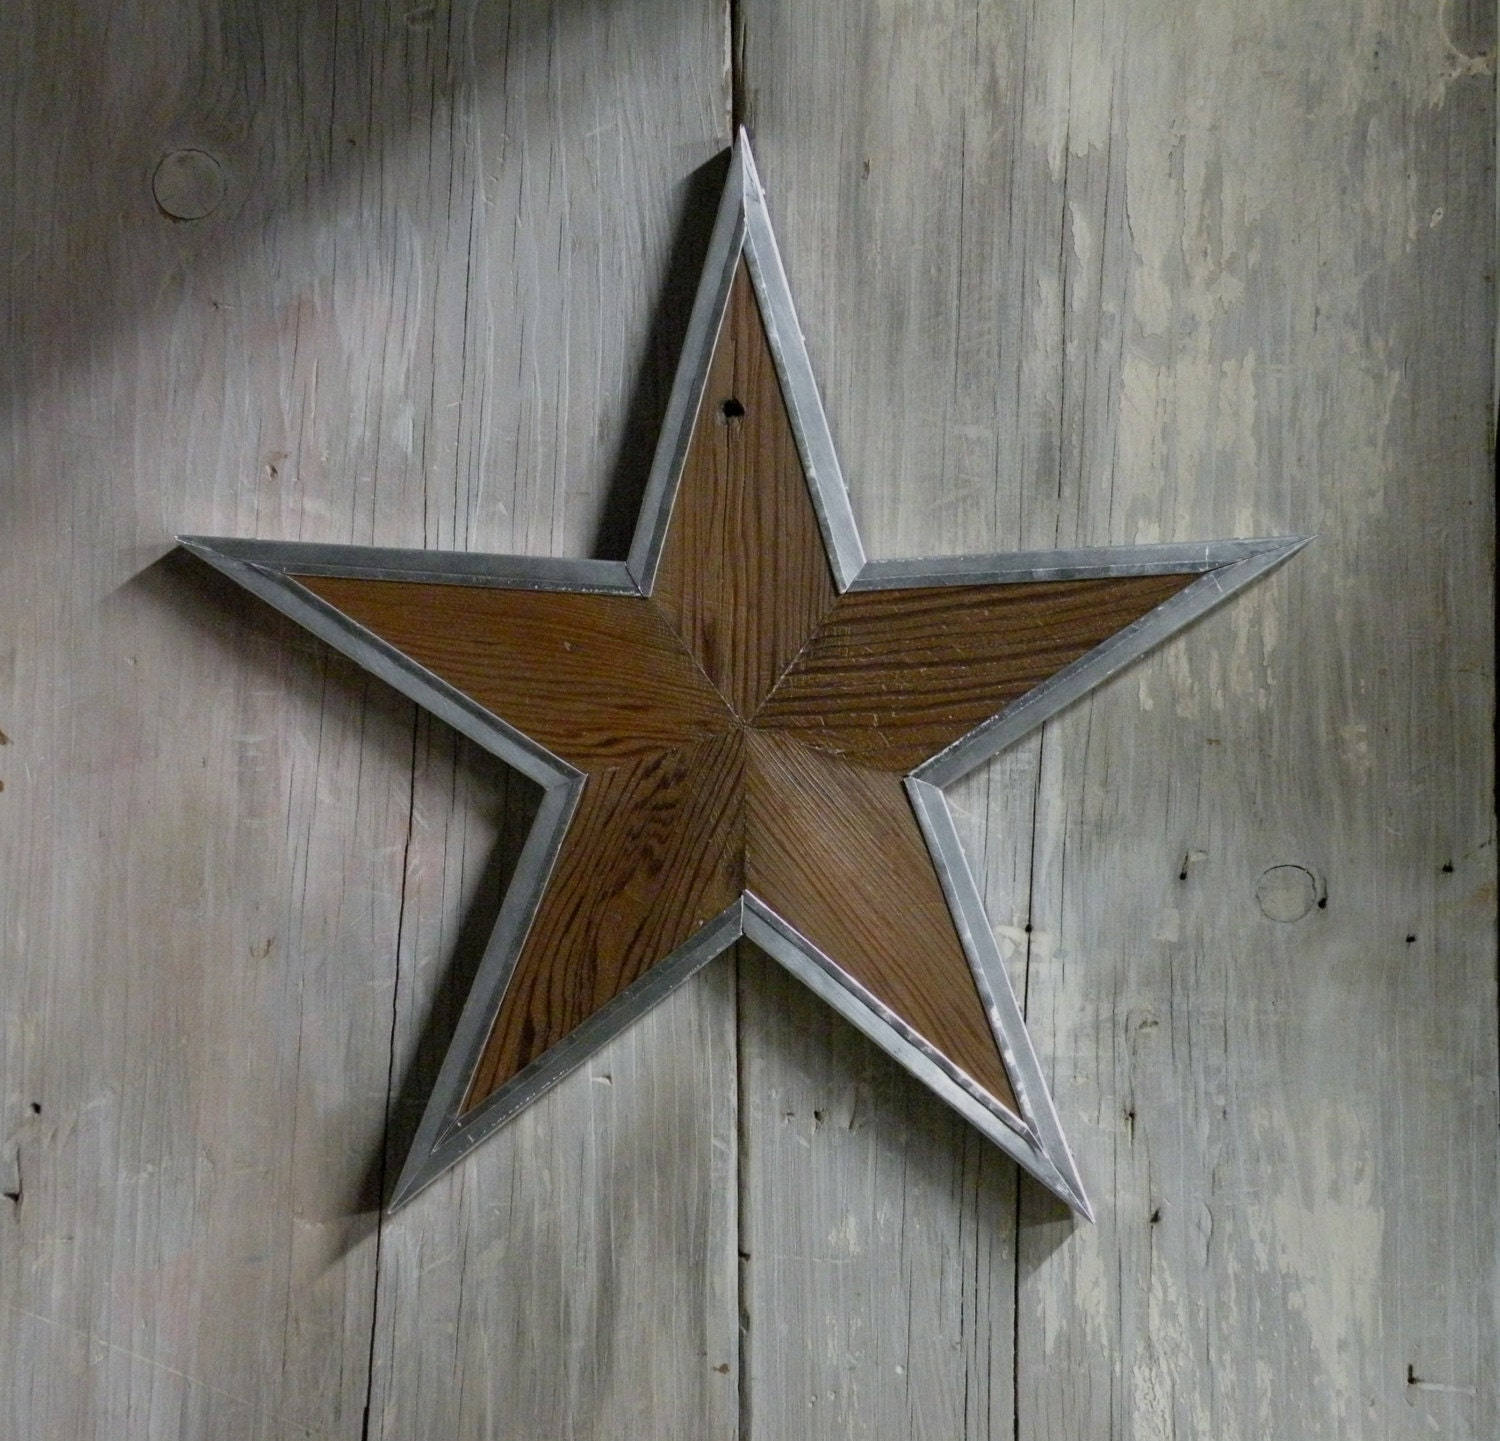 Wood Star Wall Decor With Hammered Tin Trim